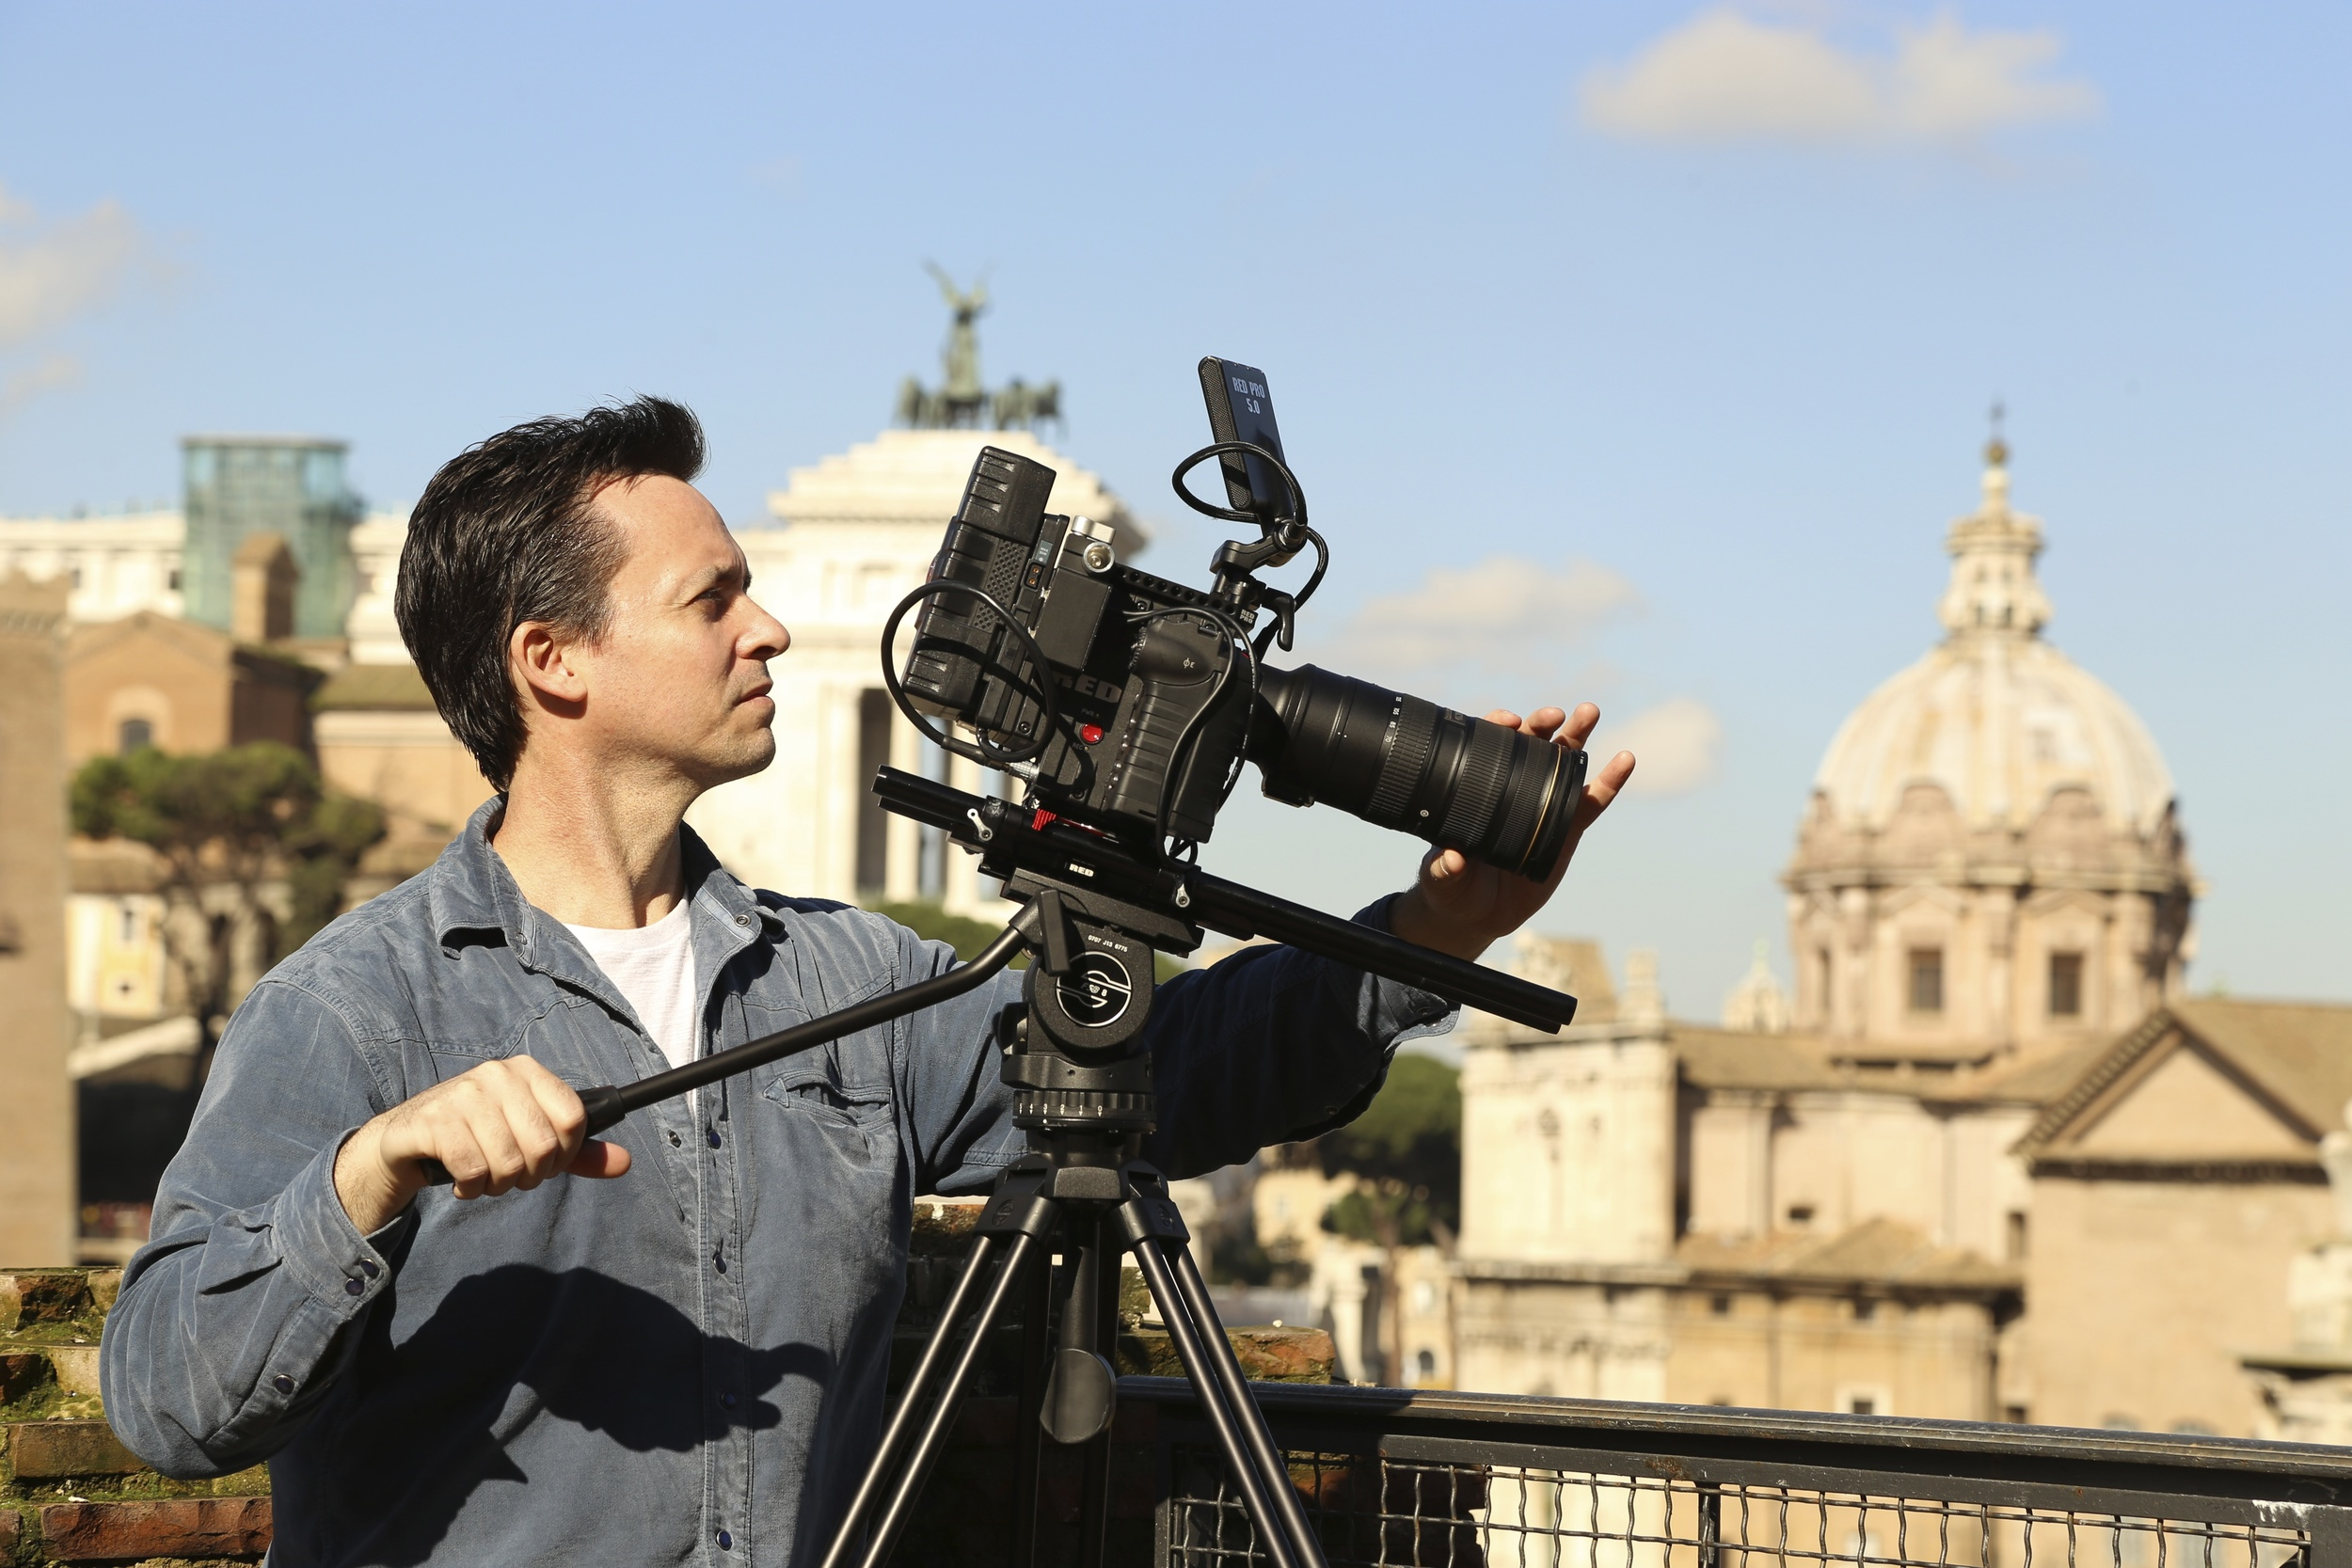 Shooting with RED Epic atop the rampa overlooking the Roman Forum.